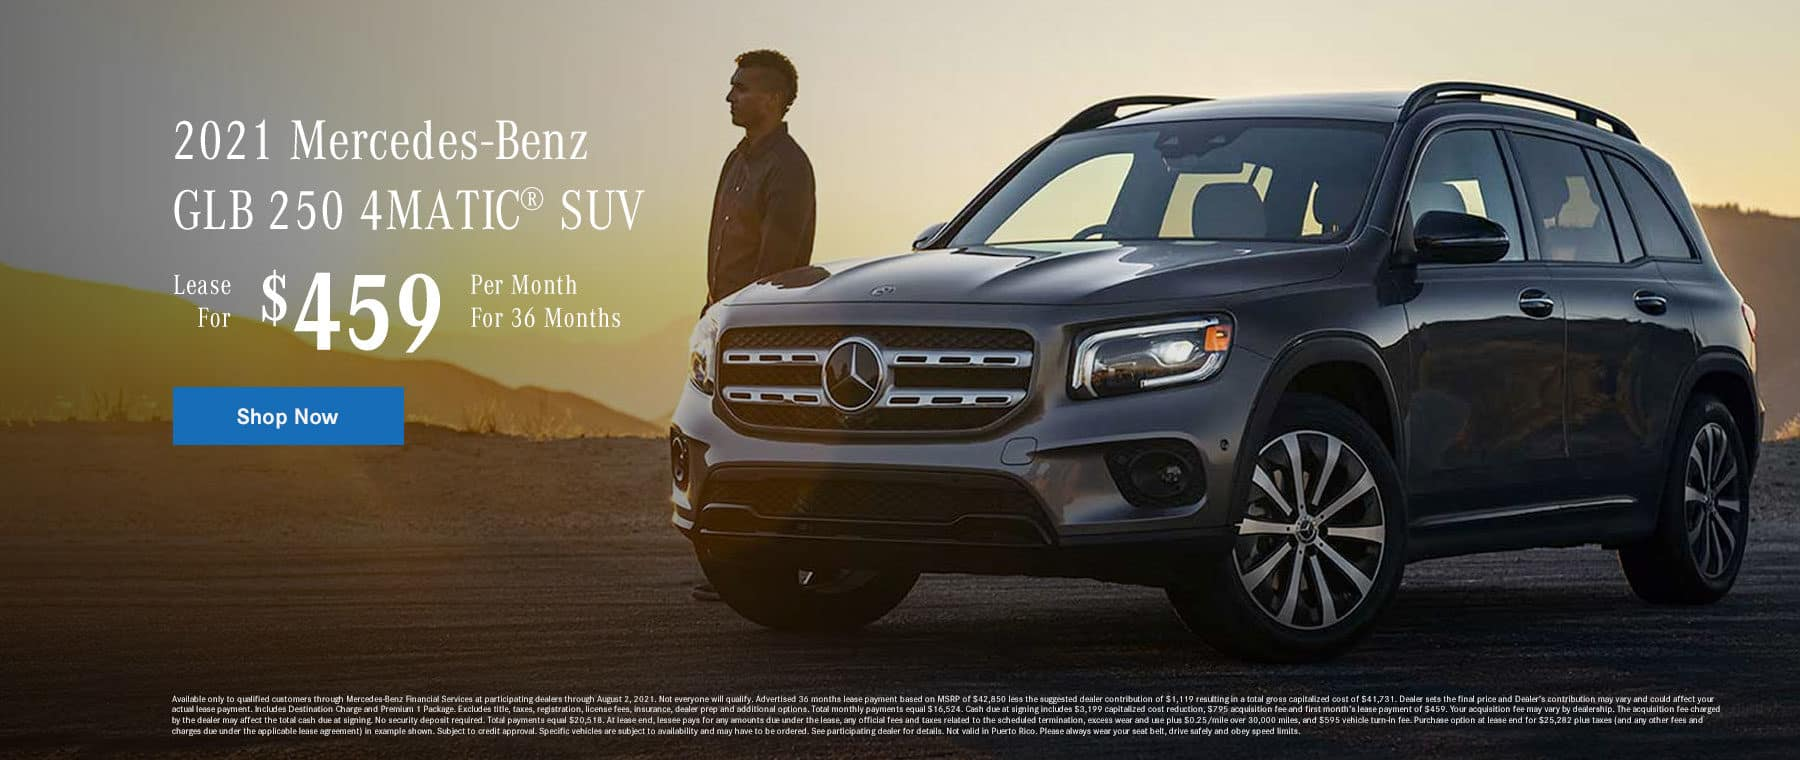 2021 Mercedes-Benz GLB 250 4MATIC® SUV, Lease for $459 Per Month for 36 Months